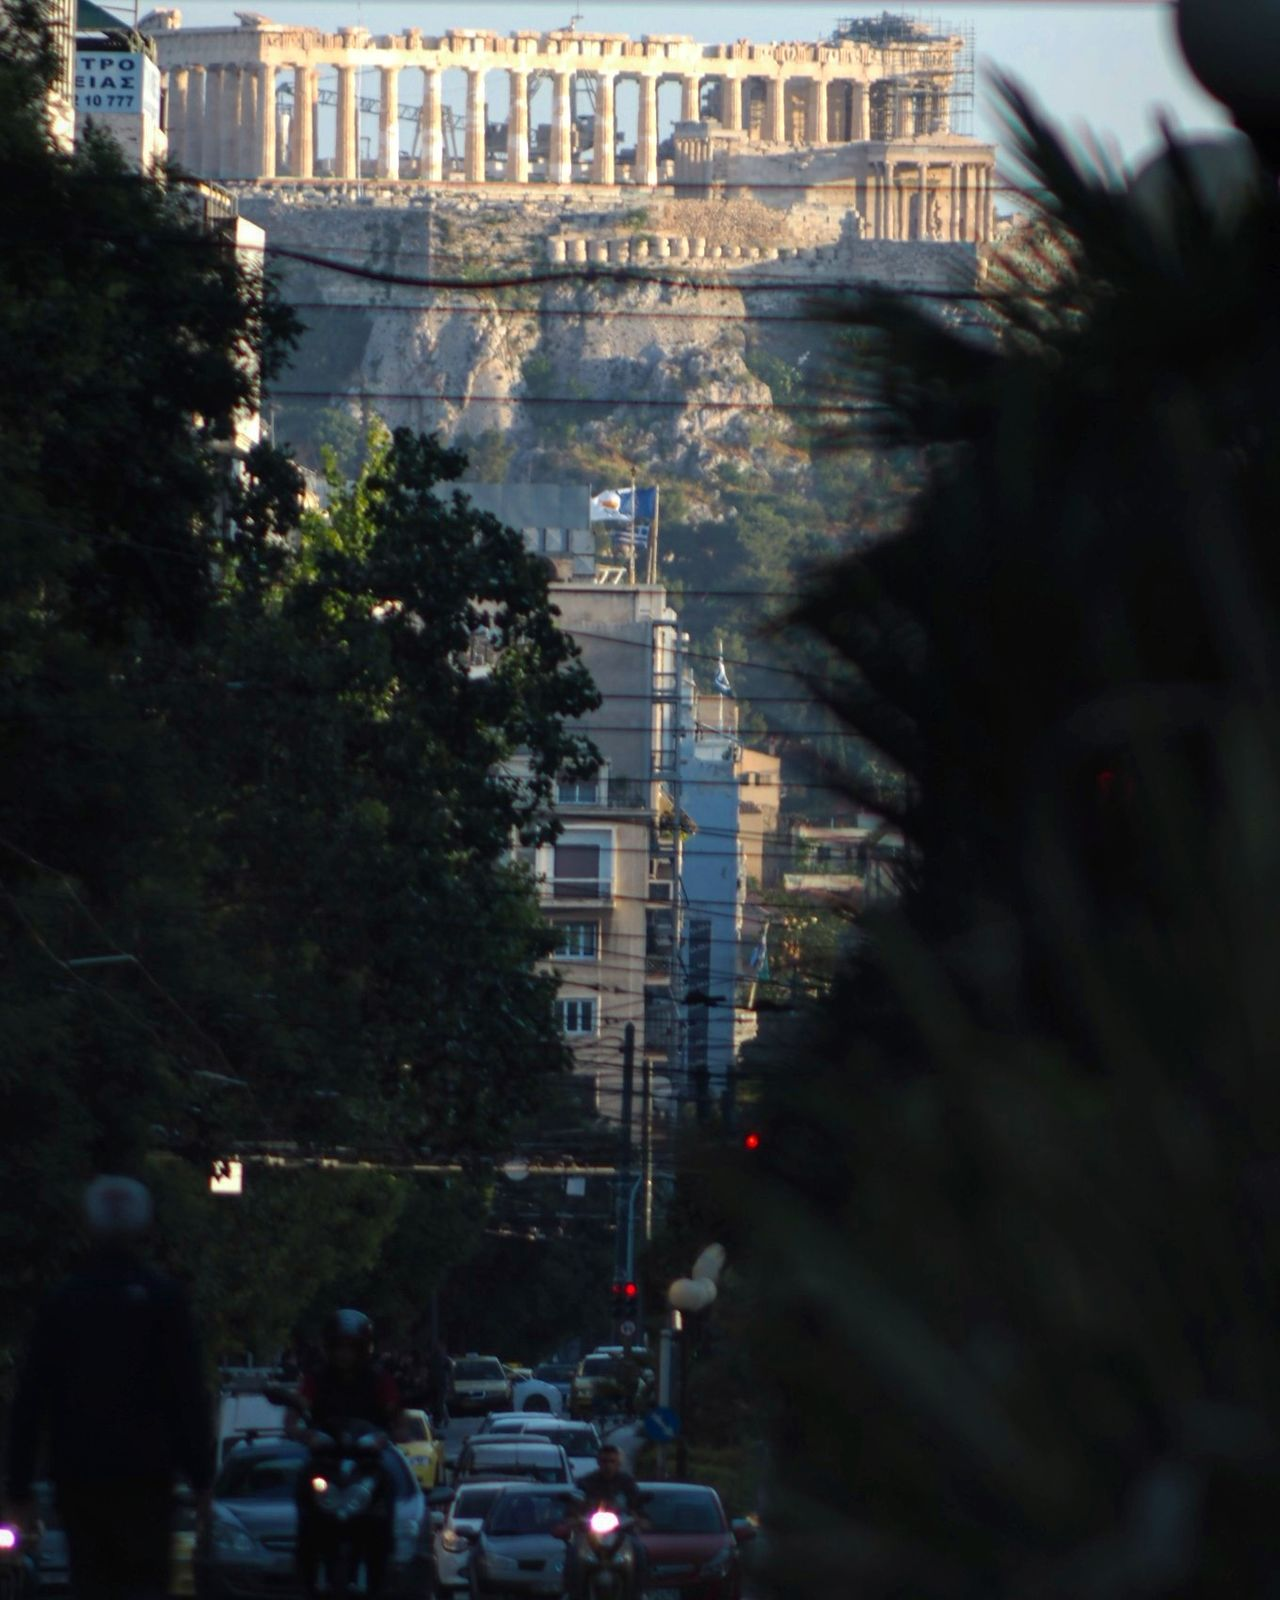 Architecture Tree Built Structure Car High Angle View Building Exterior City Travel Destinations Arts Culture And Entertainment Outdoors Day No People Cityscape Sky Parthenon Acropolis Greece Parthenon Athens Greece Athens City Athens, Greece Neighborhood Map